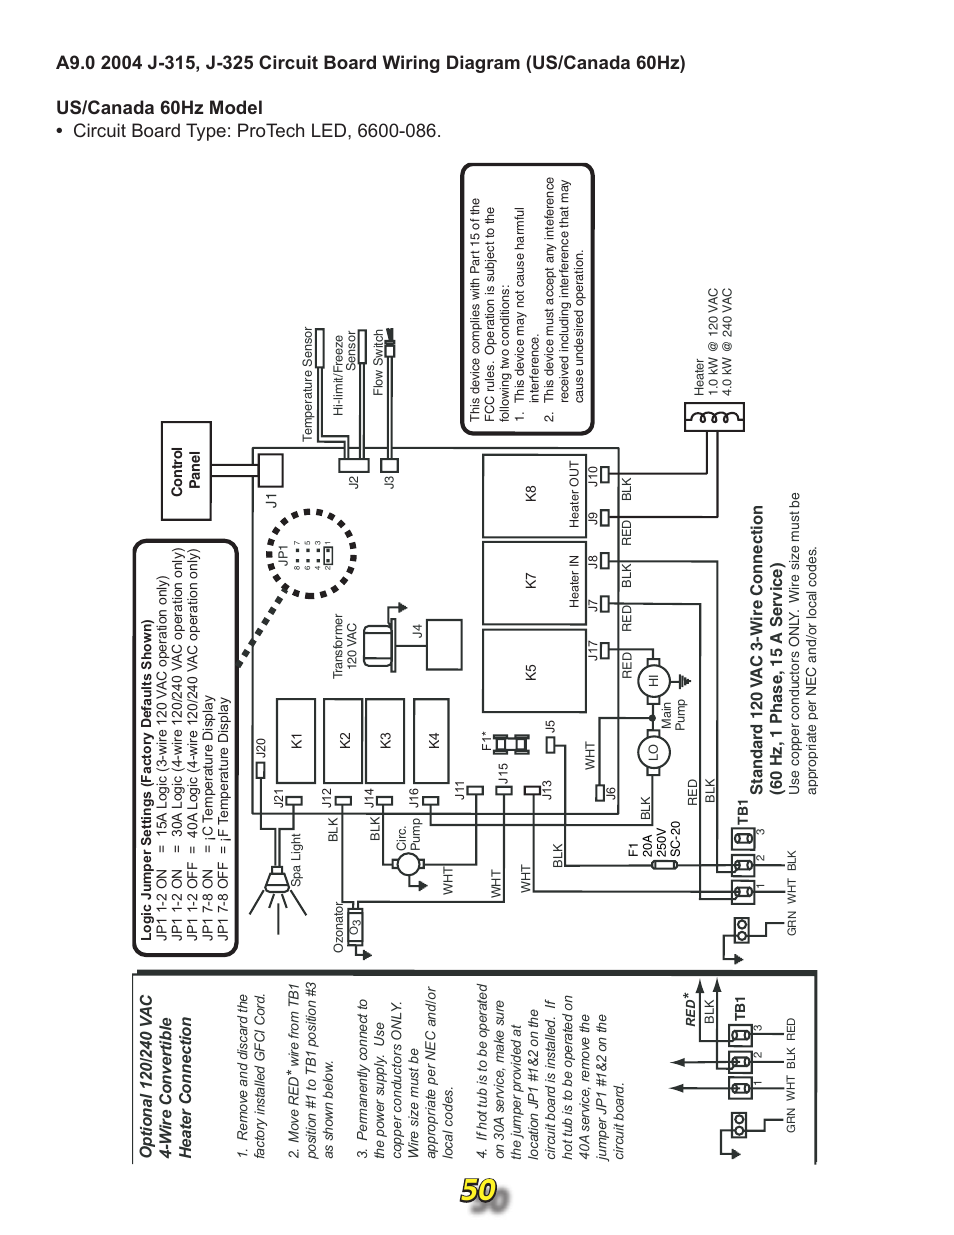 j 380 circuit board wiring diagram jacuzzi j315 user manual page 50 62 also for    j    345  jacuzzi j315 user manual page 50 62 also for    j    345